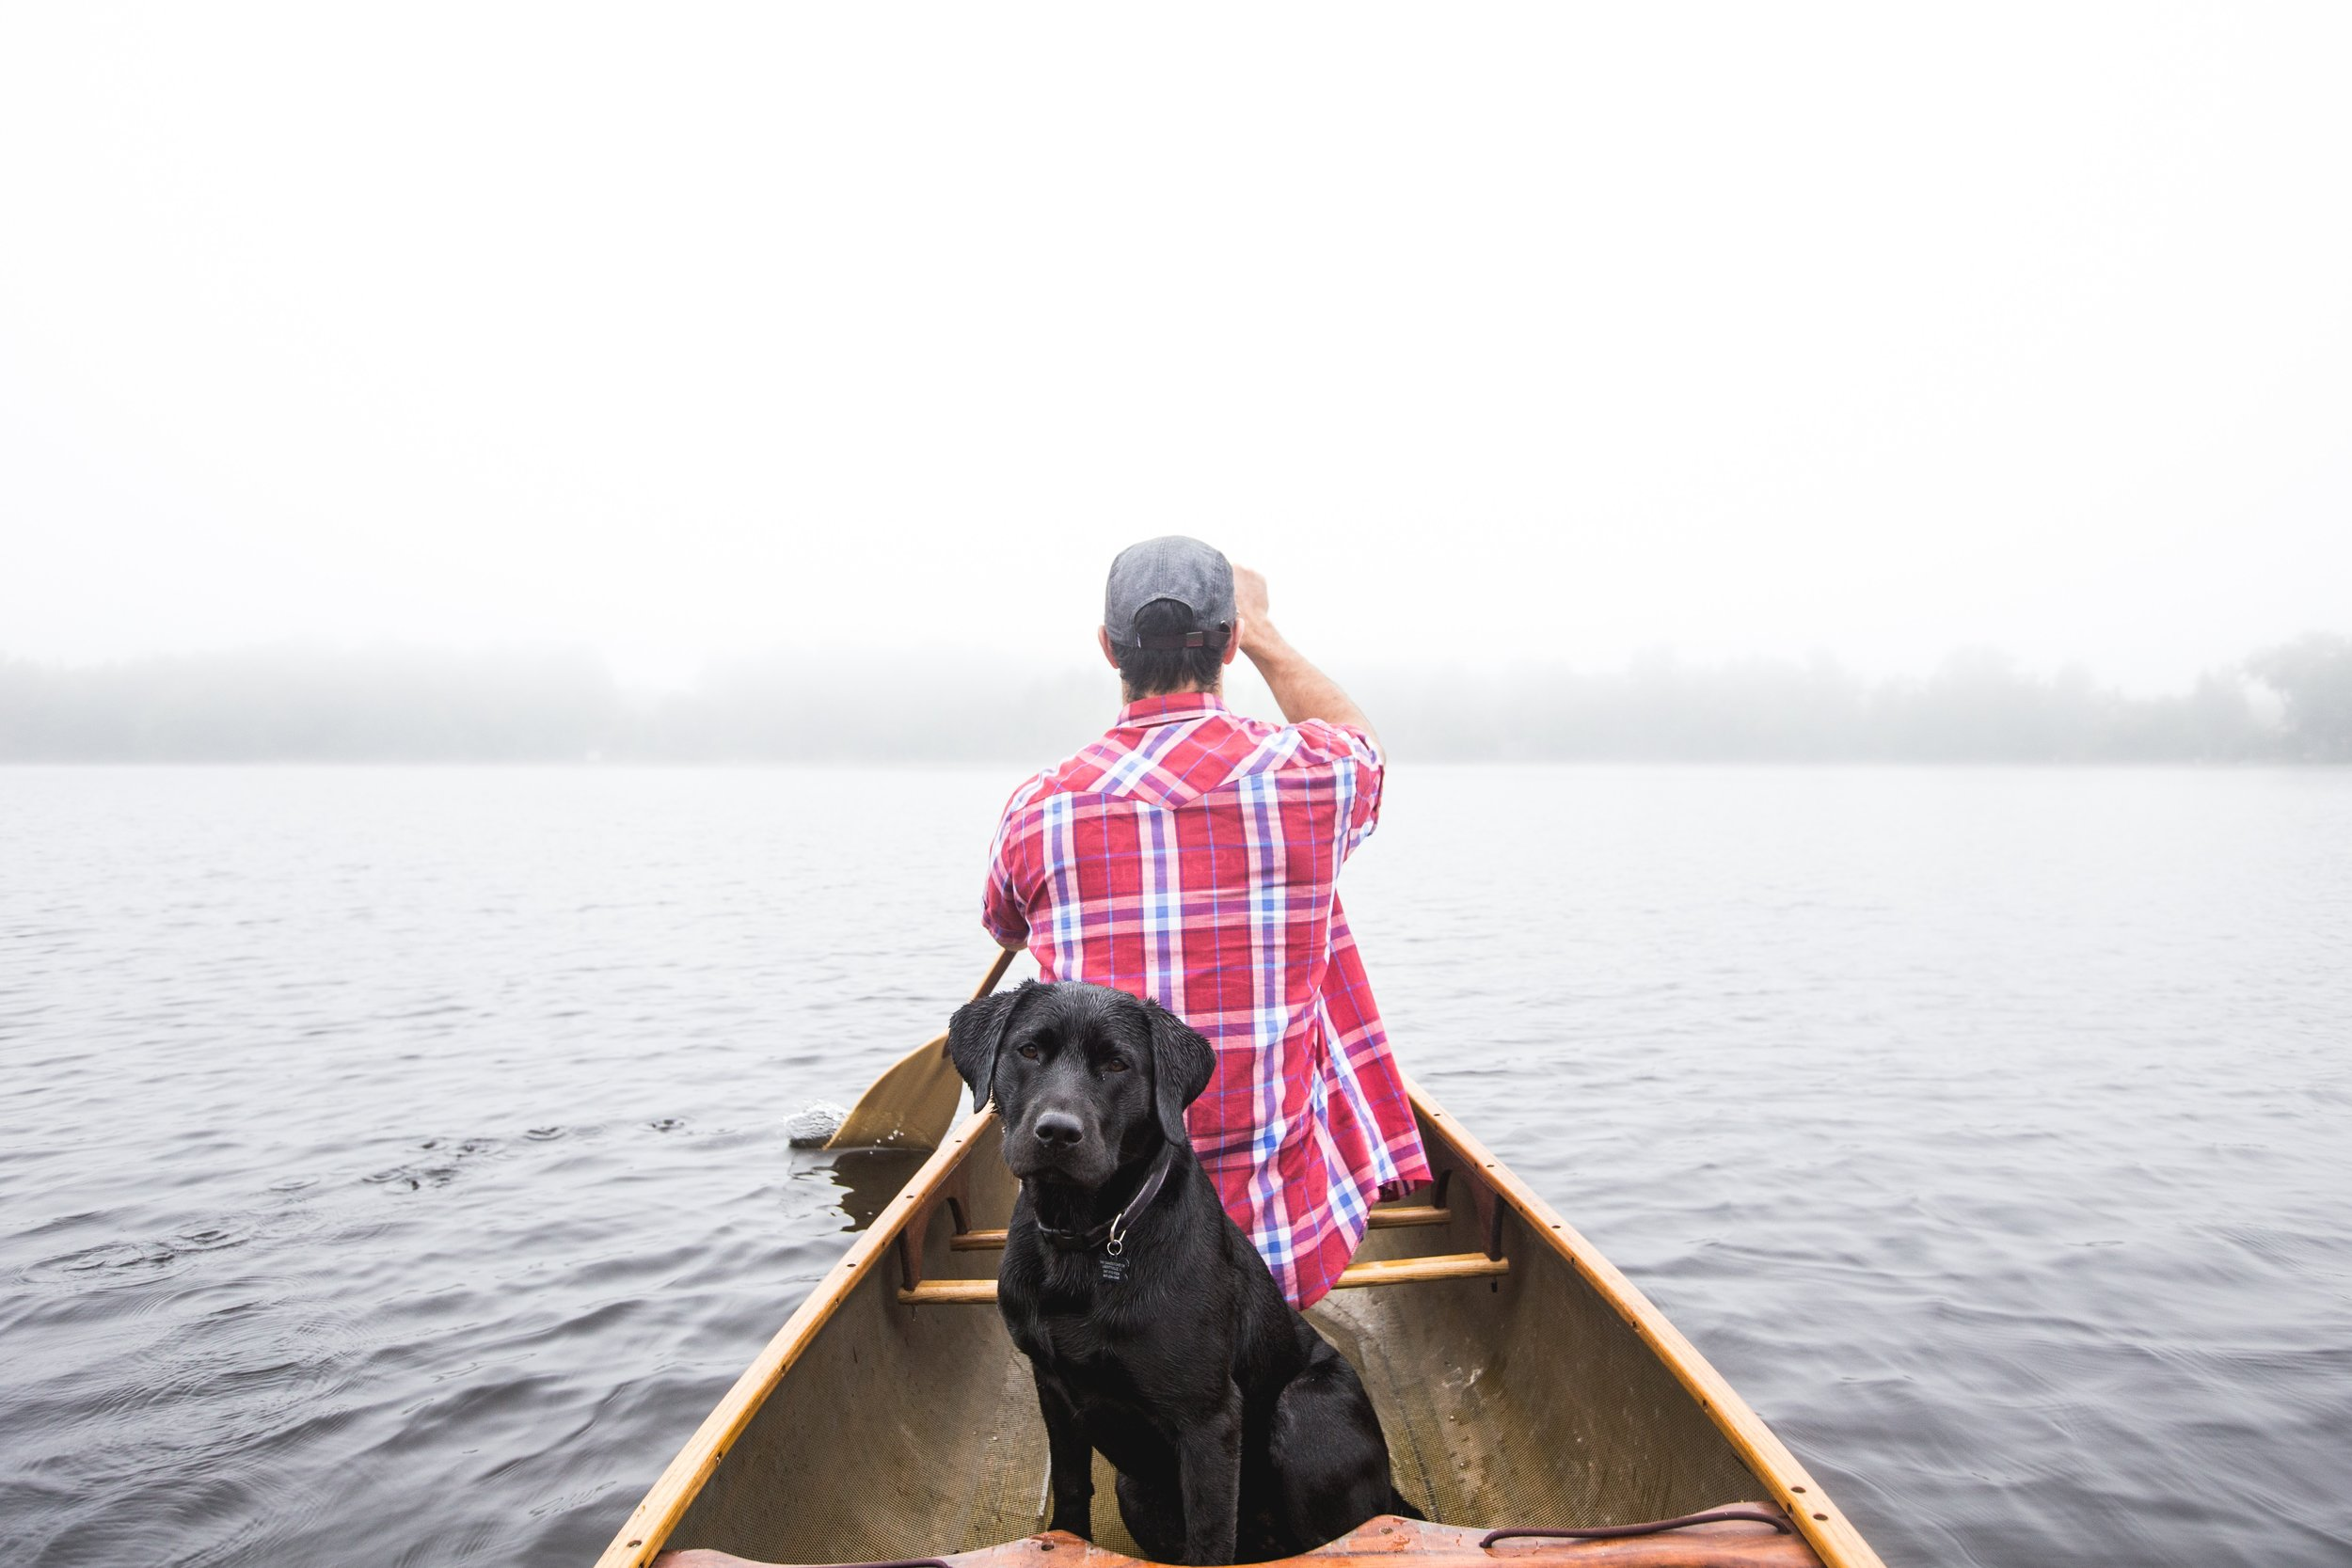 Homeward Bound Animal Care Lakes Region NH  Boating with your dog safety tips  Ice out